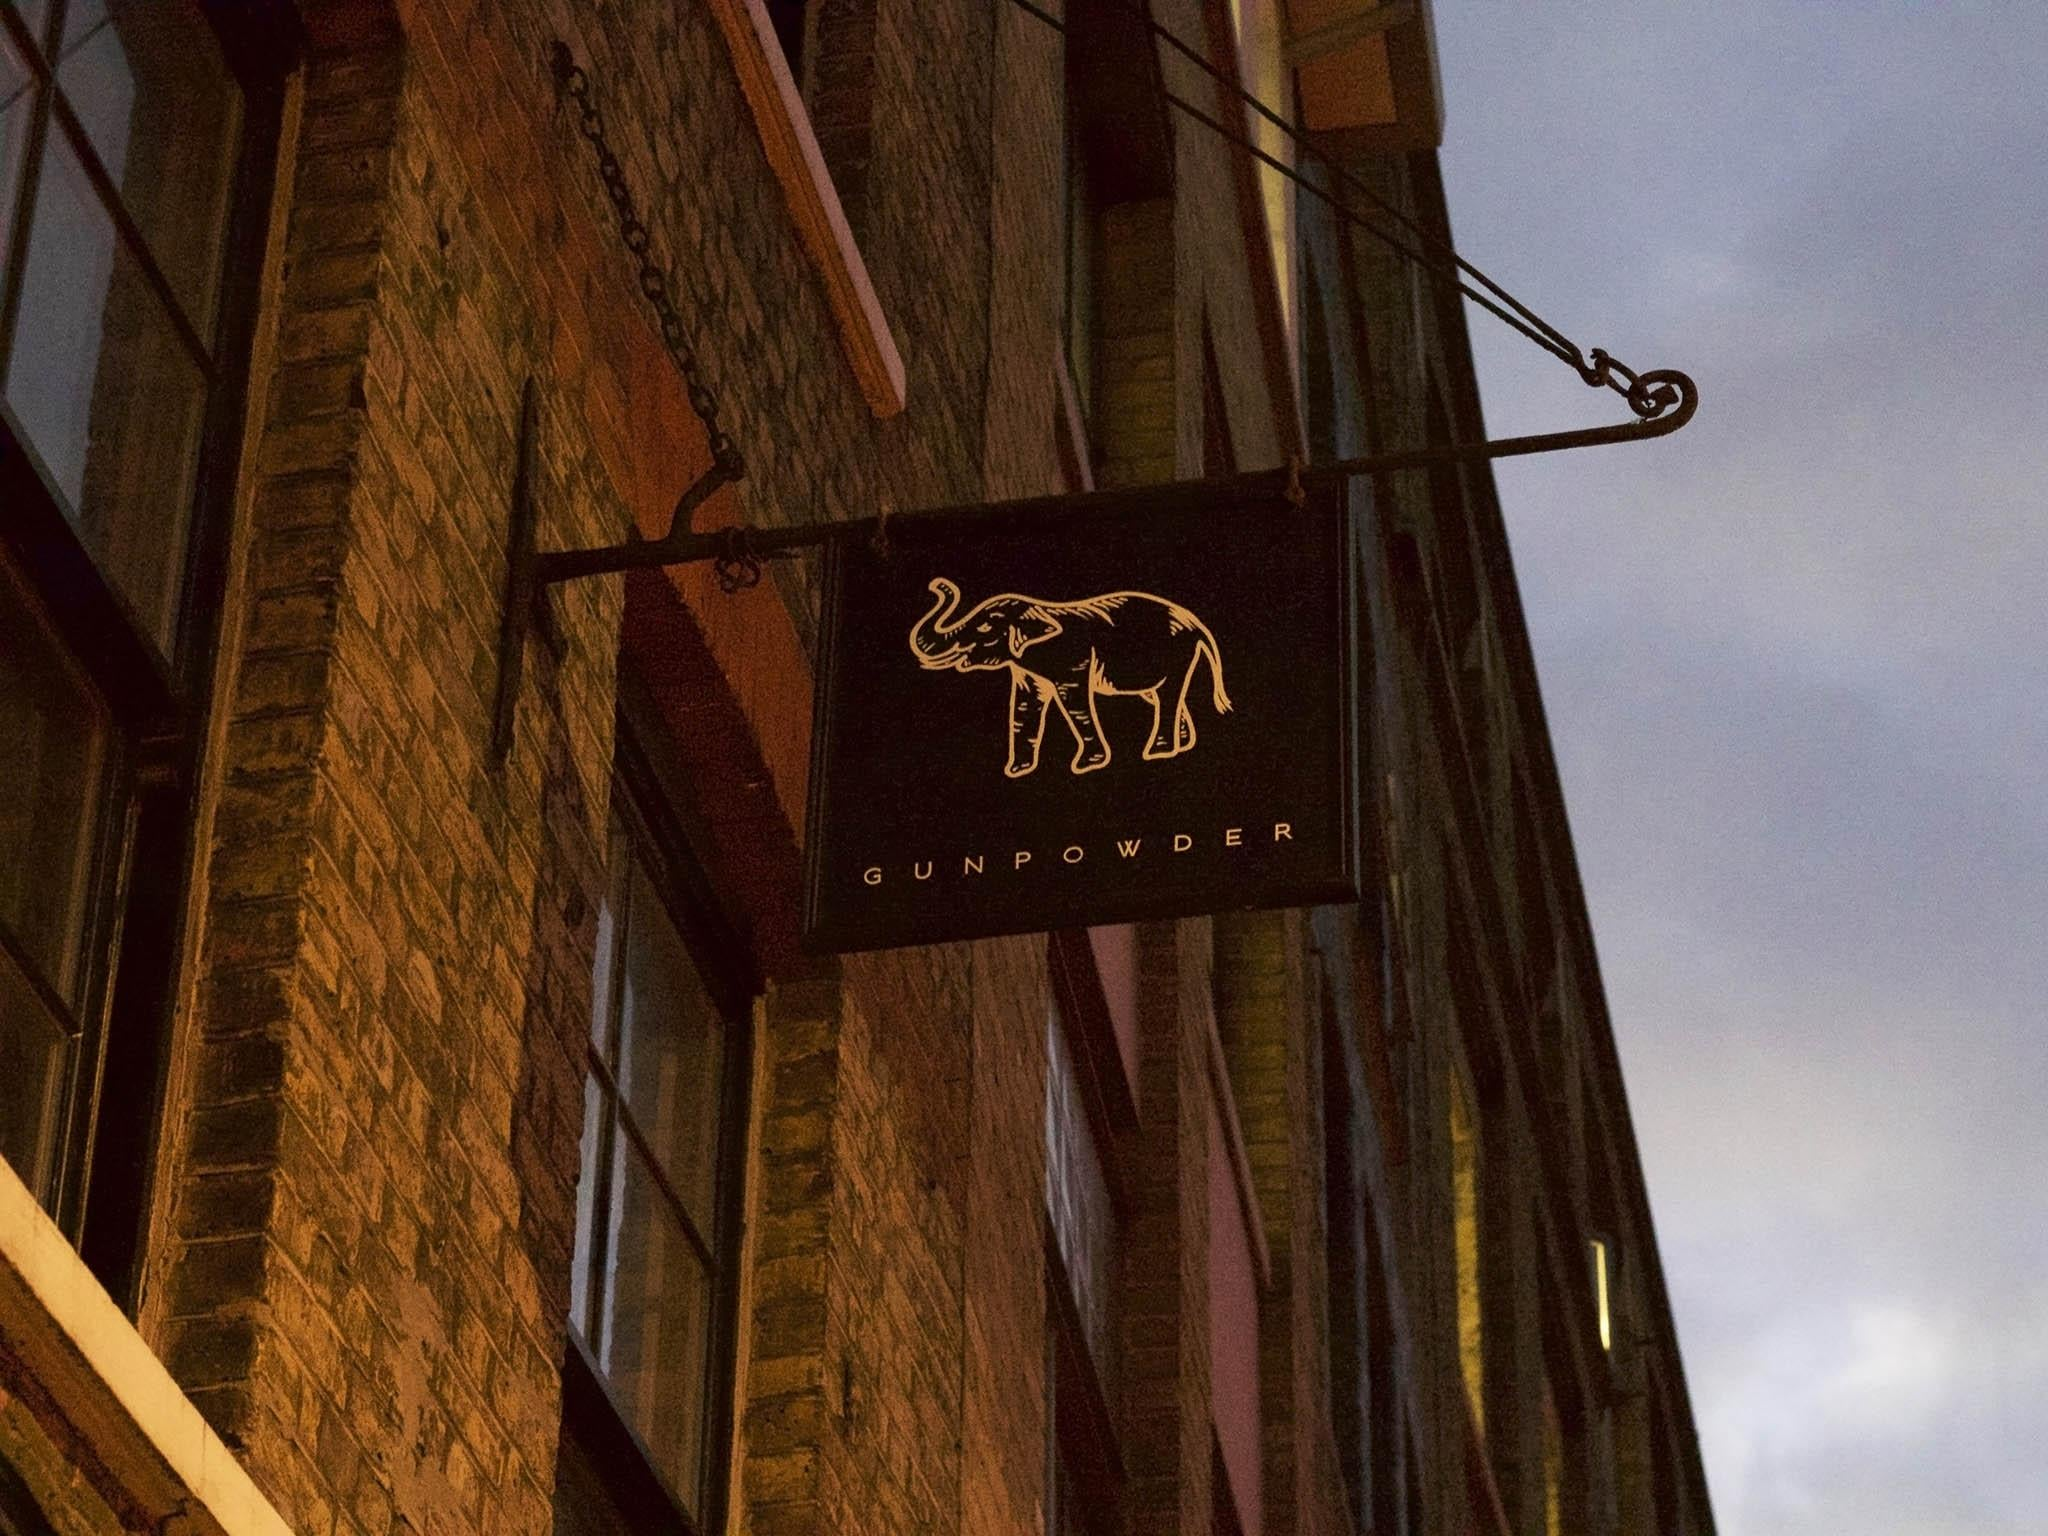 Restaurant review, Gunpowder: I'll be back... and this time I meant …